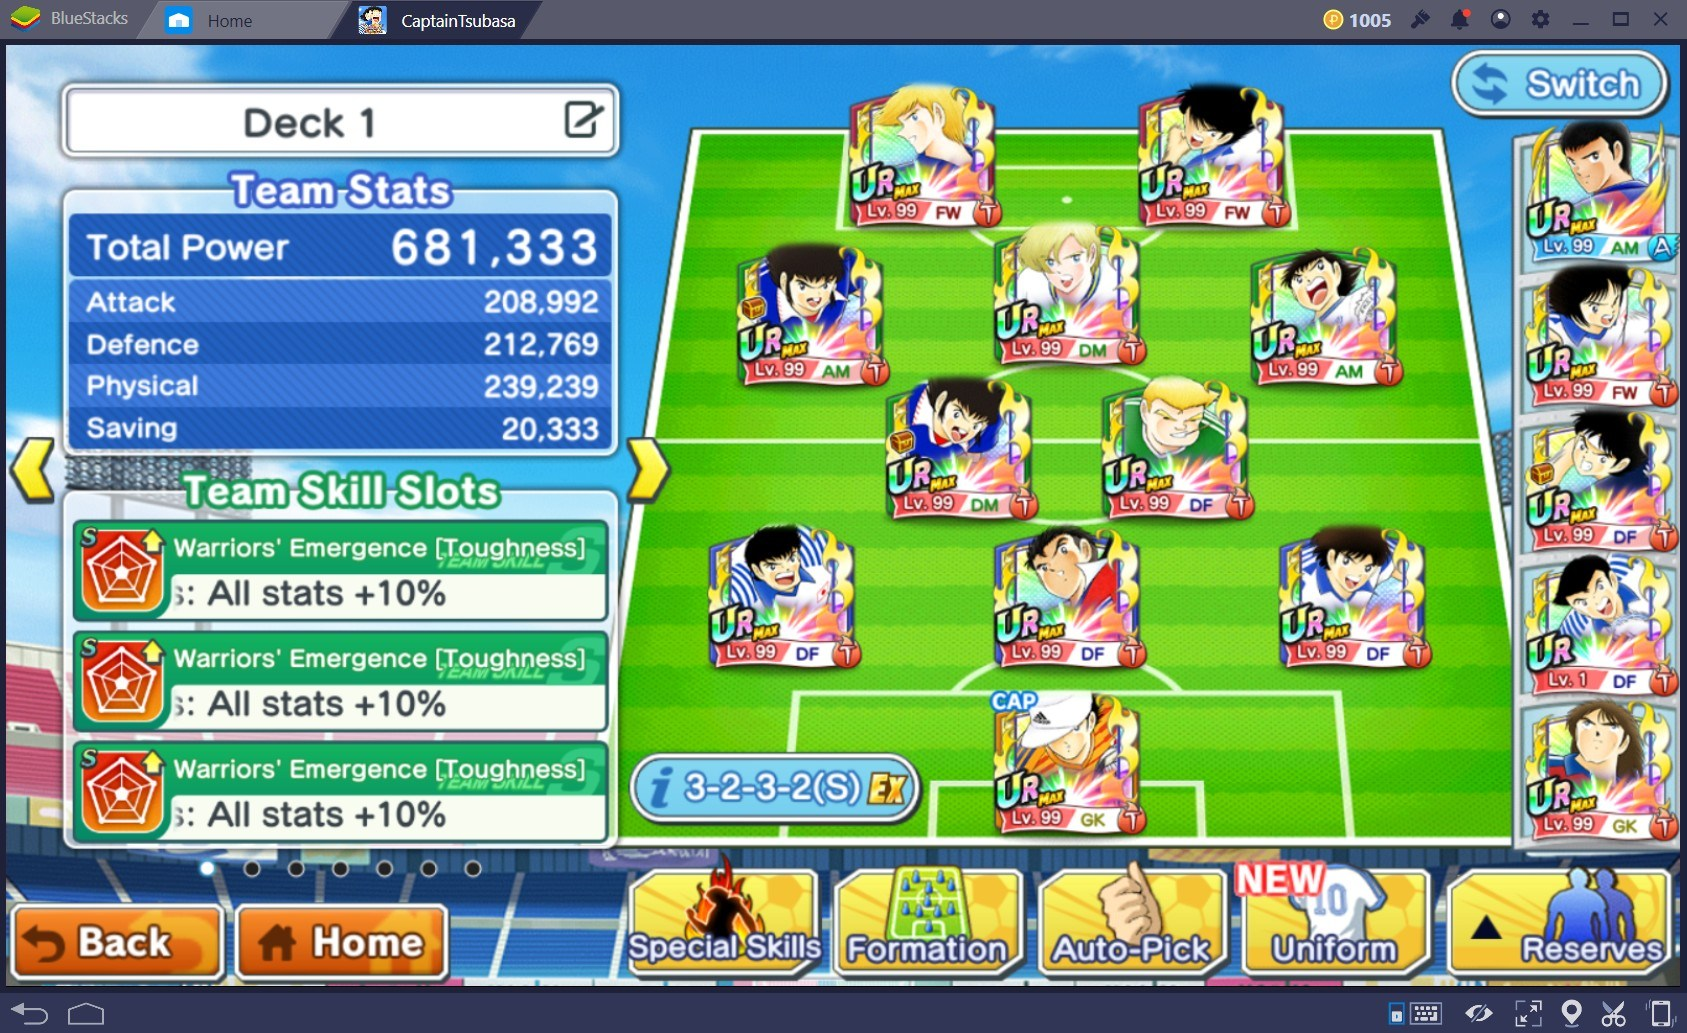 Captain Tsubasa: Dream Team – Game hay mùa World Cup 2018 để chơi cùng BlueStacks